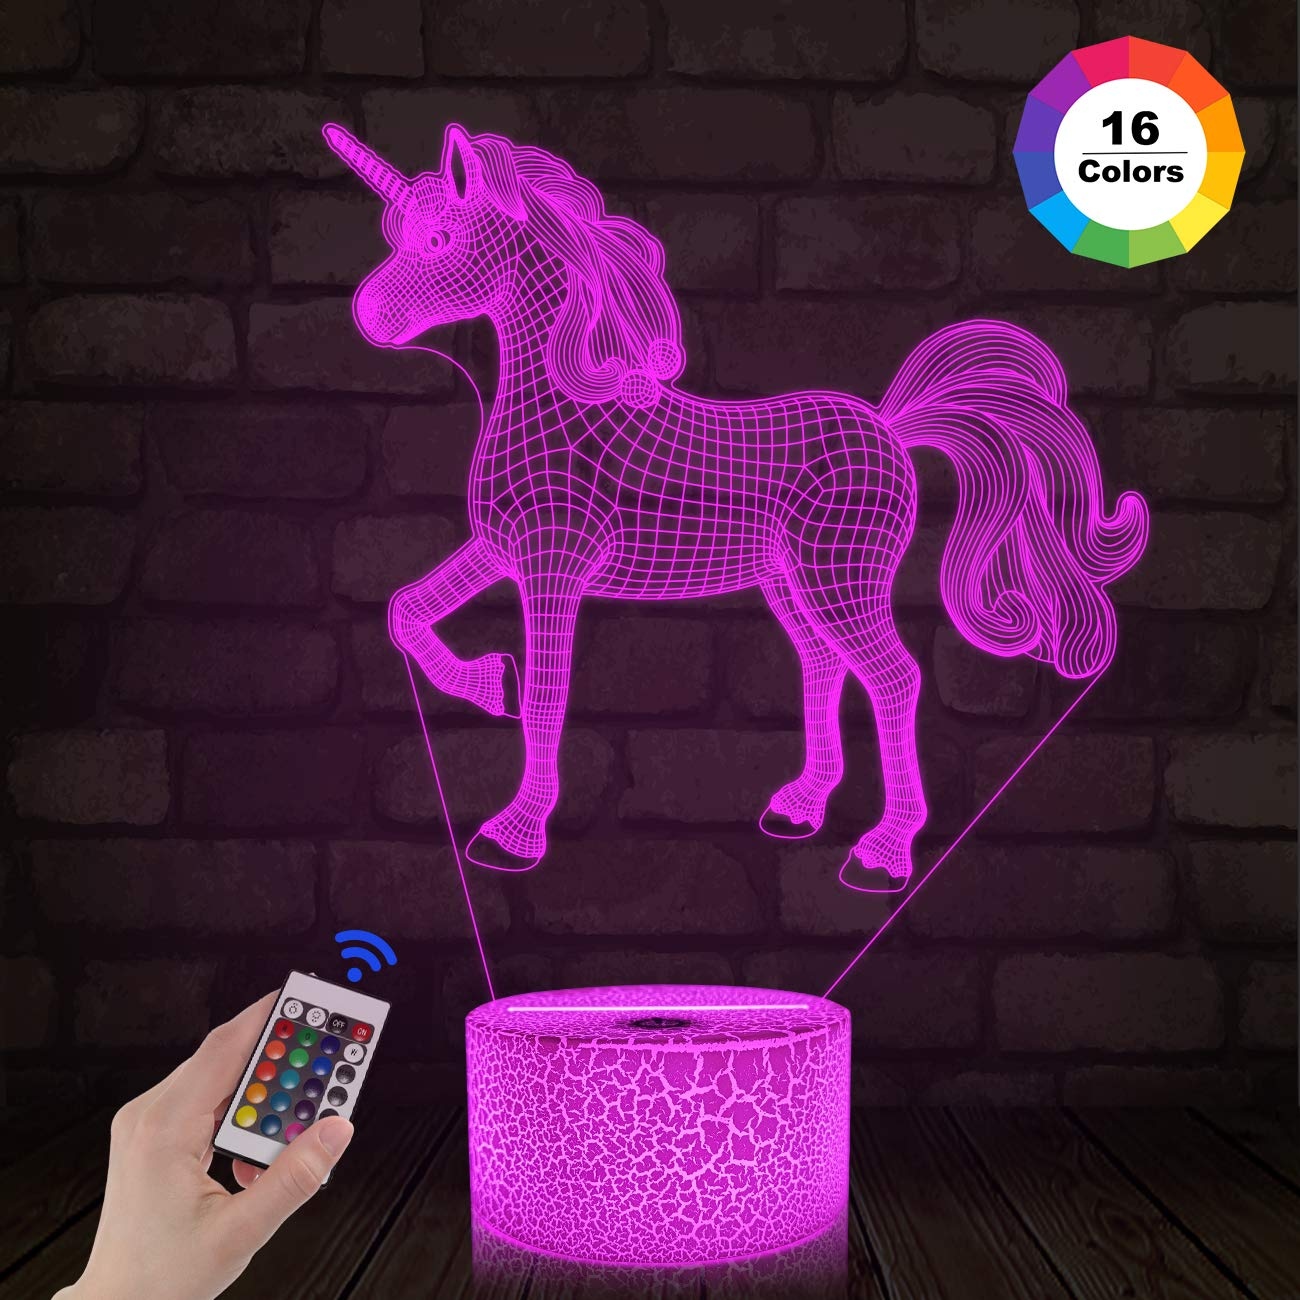 FULLOSUN 3D Kids Unicorn Night Light Optical Illusion Bedside Lamp,16 Colors Change with Remote Control Home Decor, Xmas Birthday Gift for Childs Girls Women